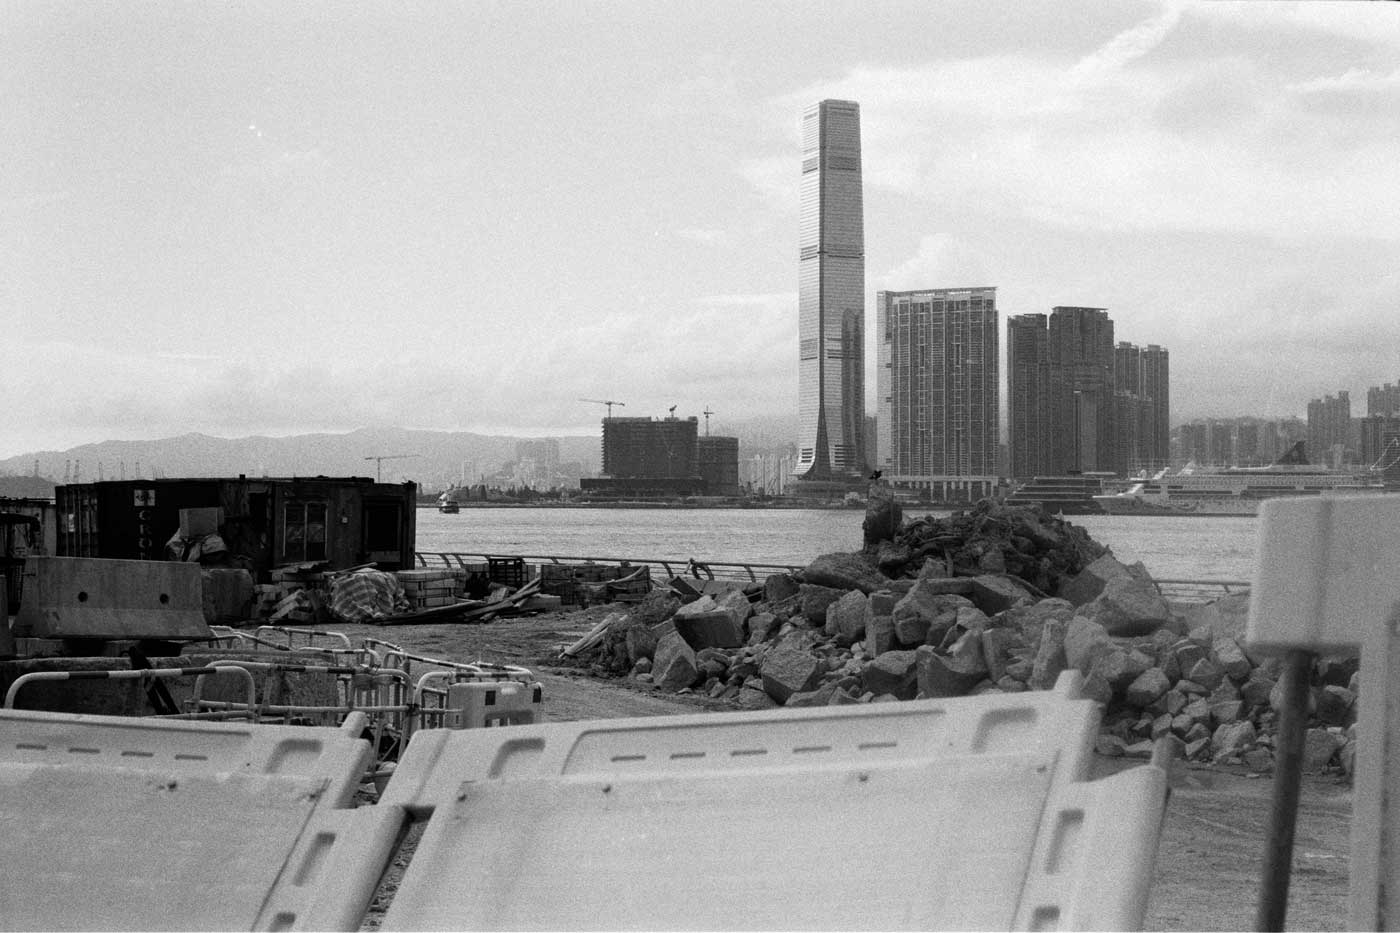 Leica-Summicron-50mm-50-f2-Rigid-Type-2-II-lens-review-kentmere-400-walk-around-admiralty-icc-centre-hk-hong-kong-construction-everywhere-messy